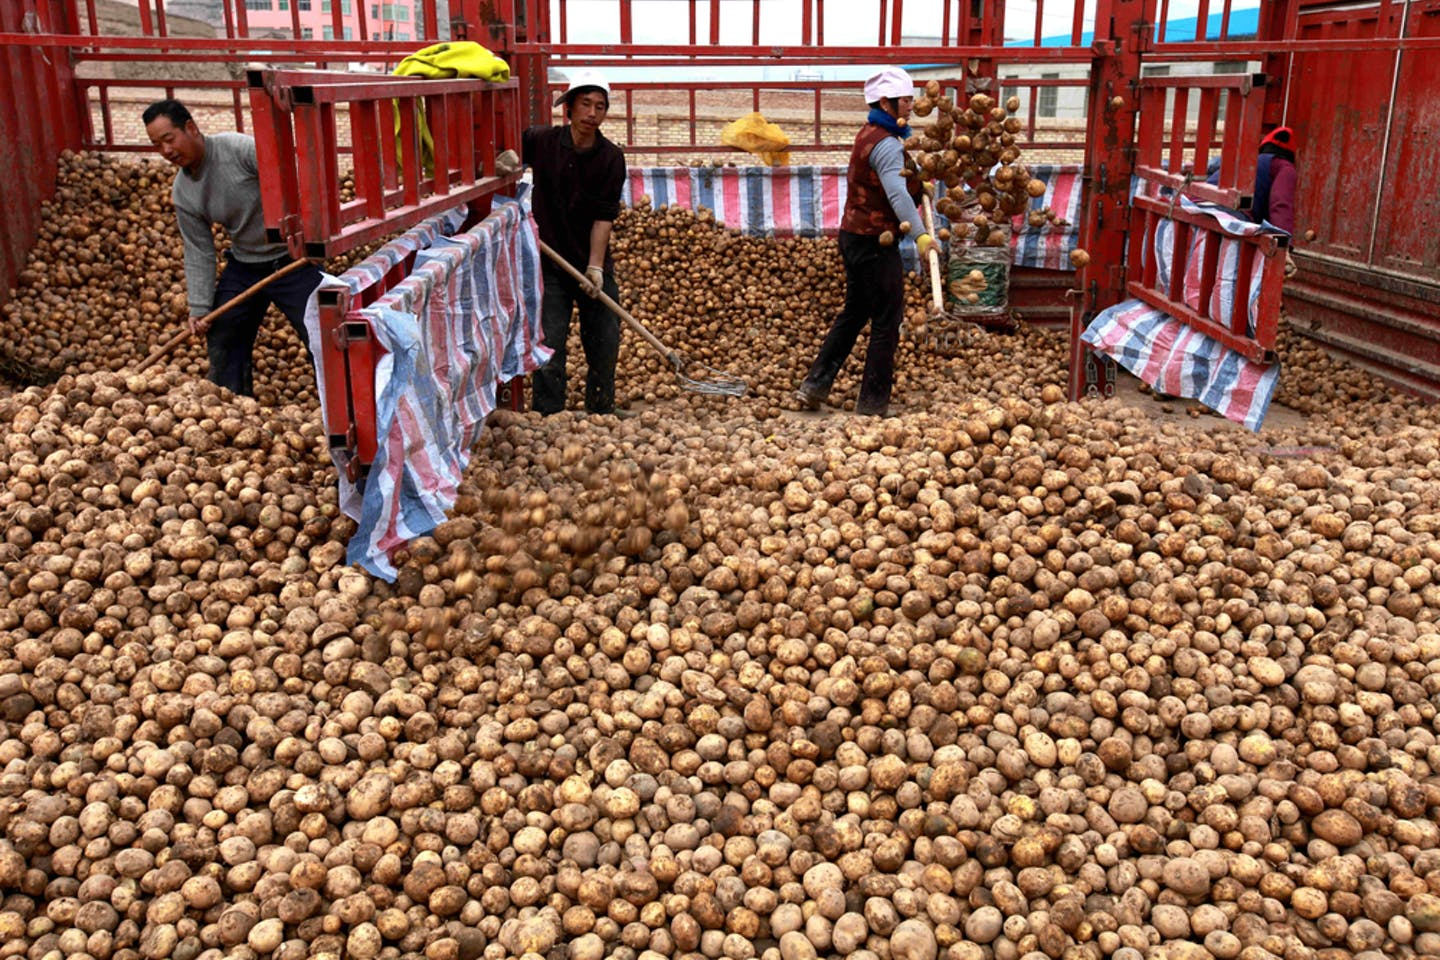 Farmers load potatoes they harvested in Huining county, China